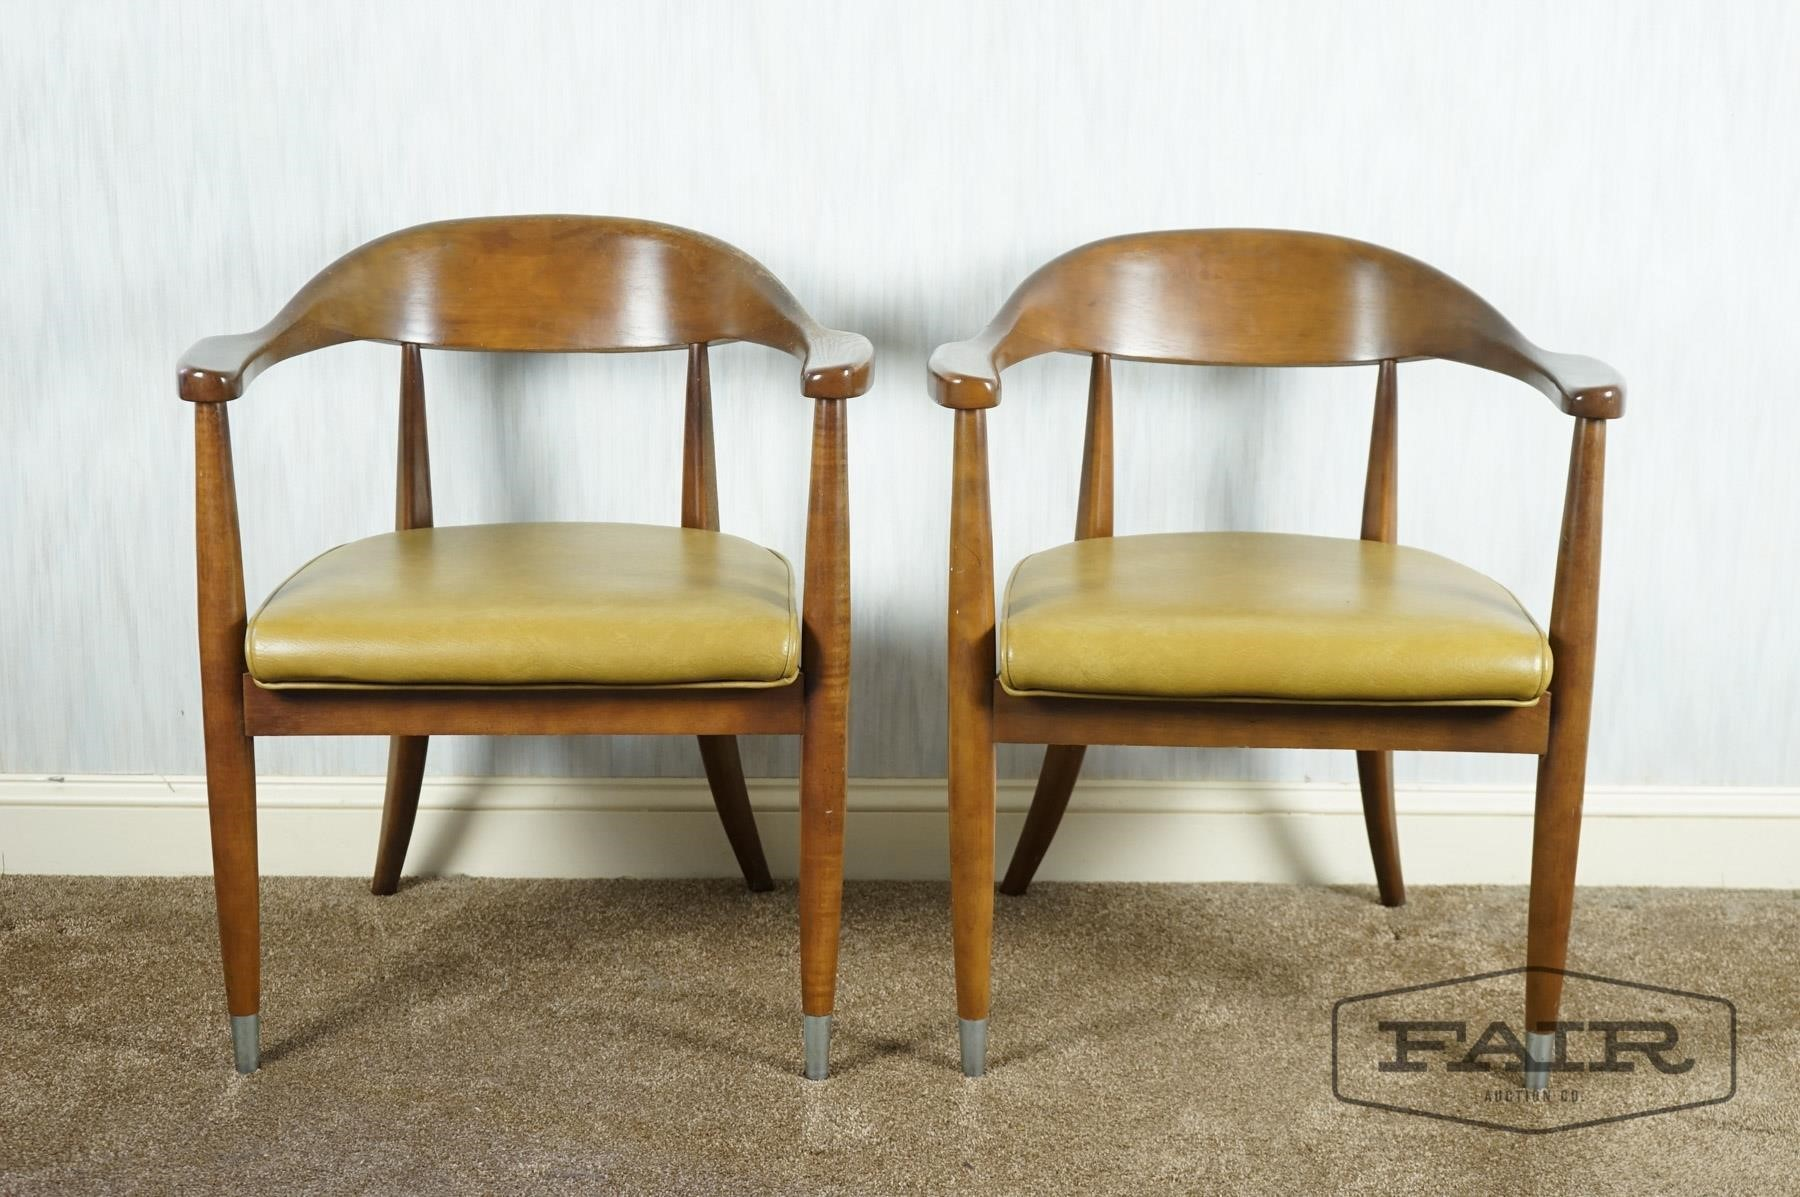 Enjoyable Pair Of Boling Mid Century Modern Arm Chairs Fair Auction Gmtry Best Dining Table And Chair Ideas Images Gmtryco